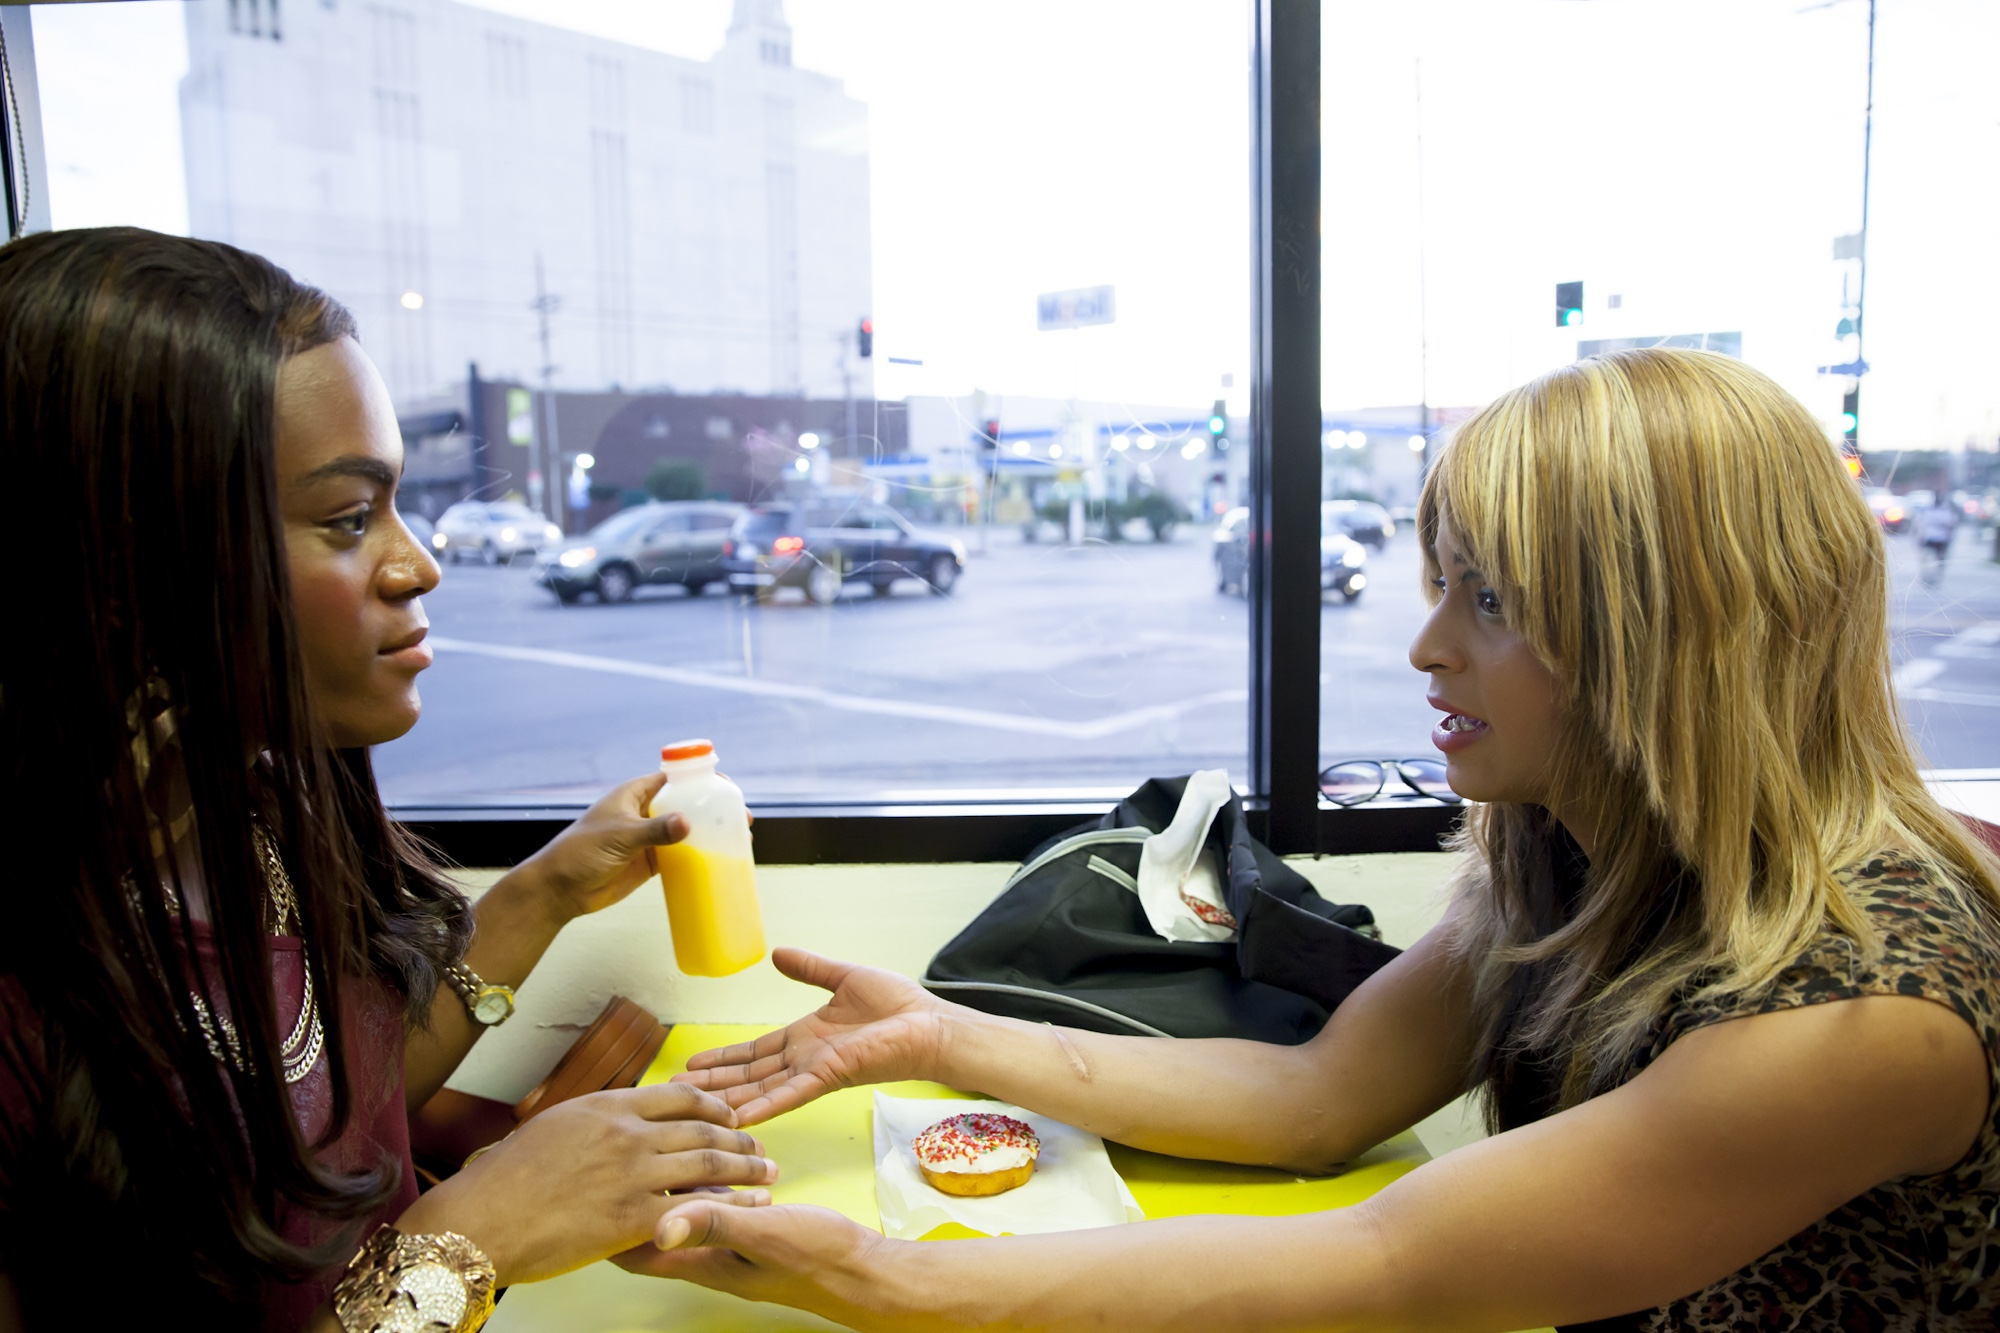 Movies to watch during Pride: Tangerine